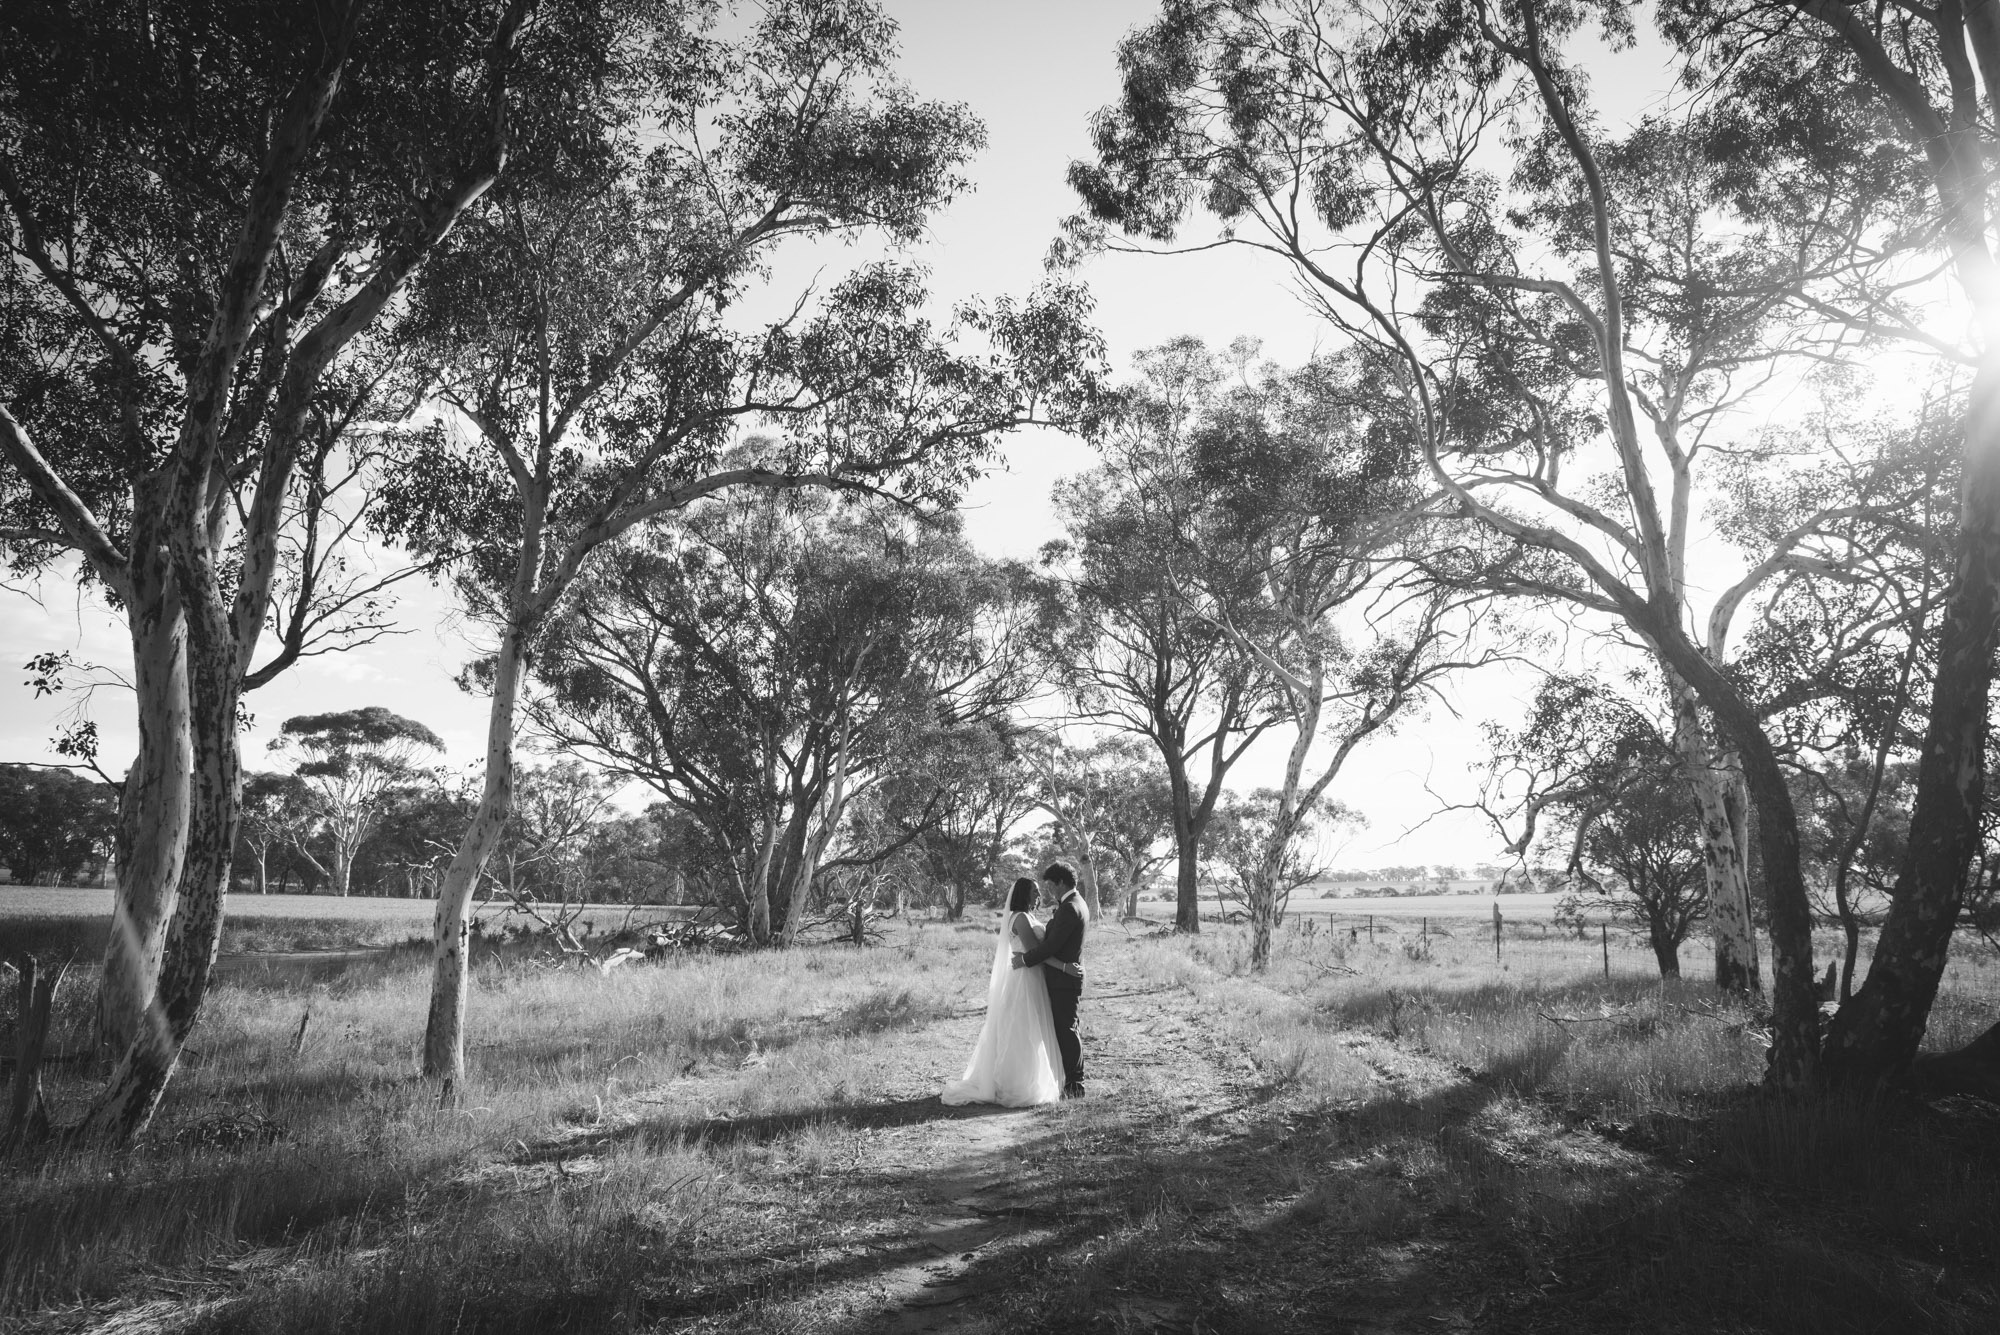 Angie-Roe-Photography-Wedding-Perth-Northam-Wheatbelt-Country-Rural (35).jpg